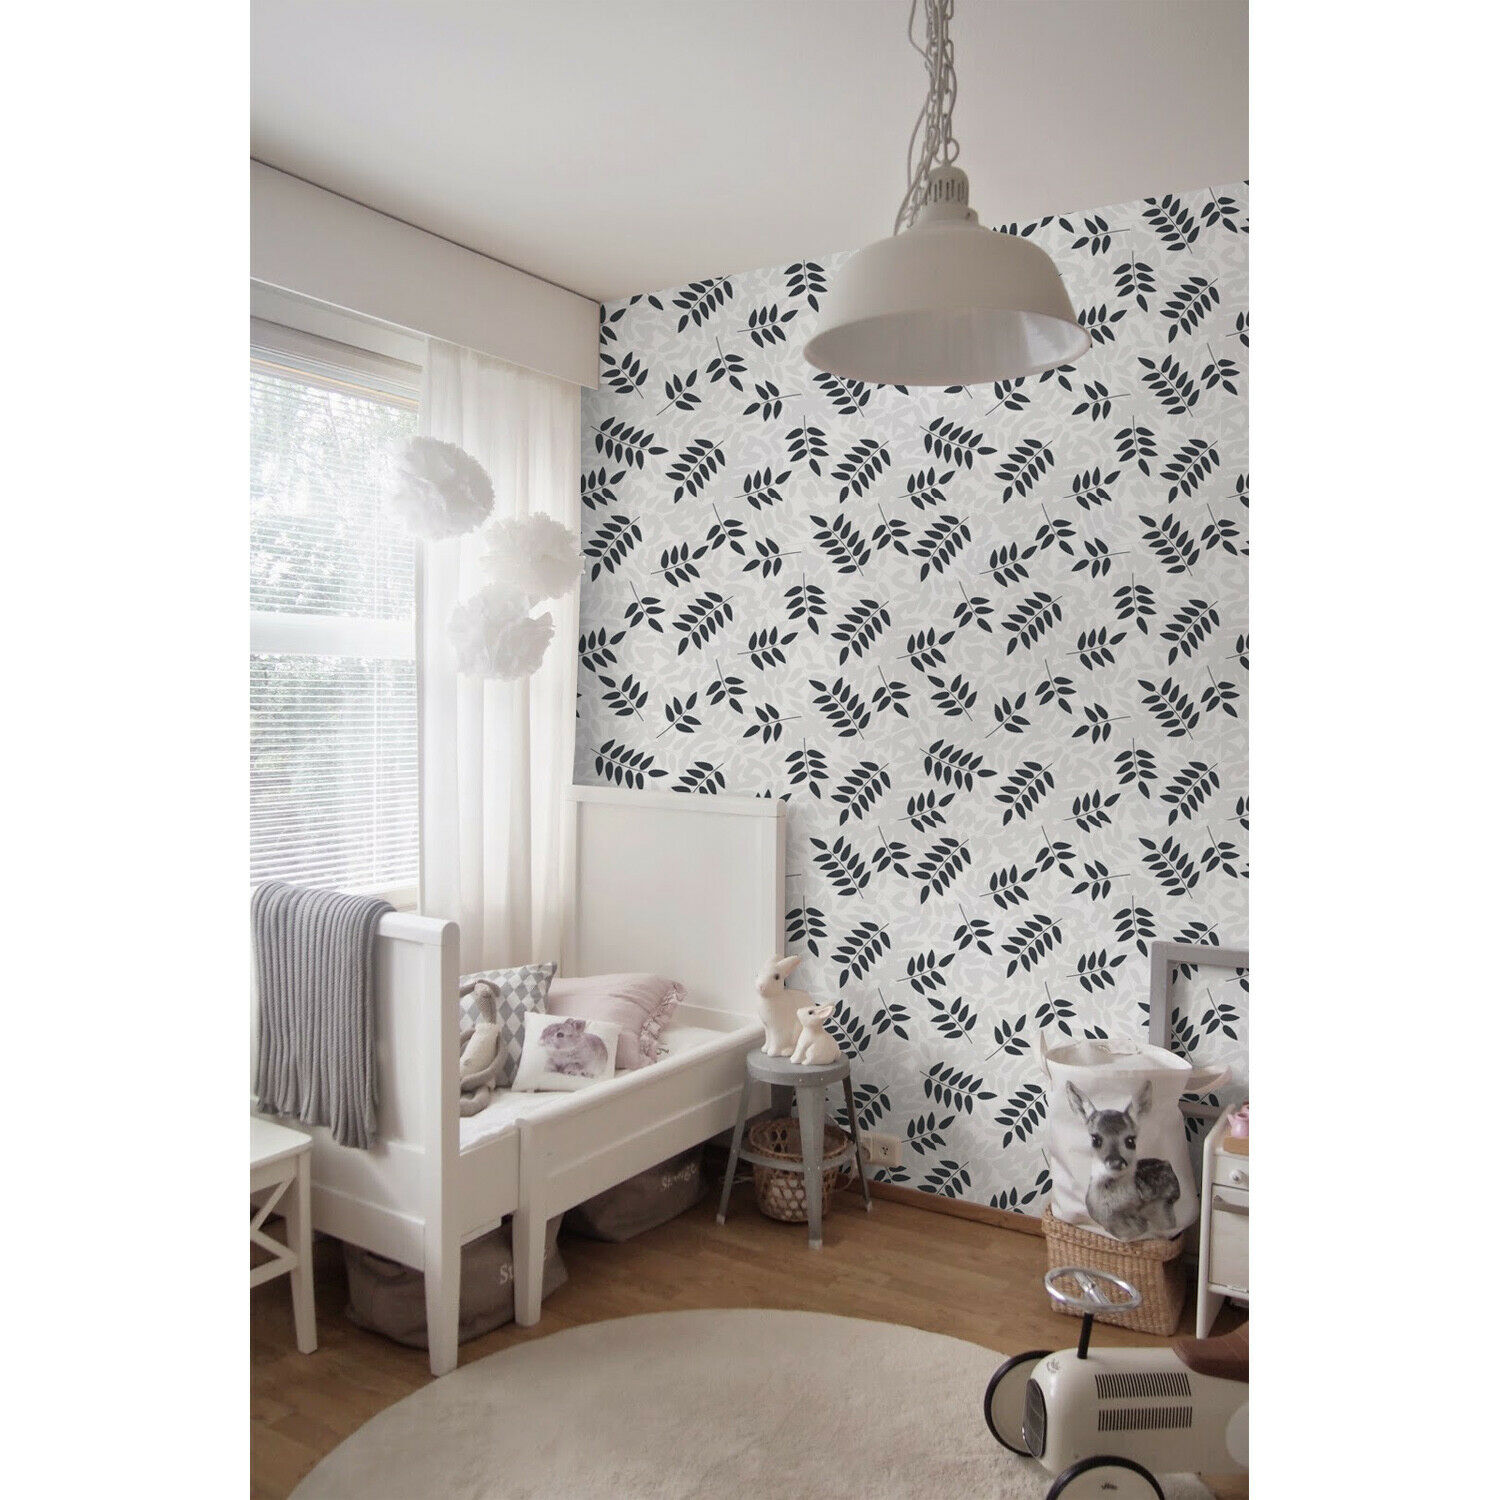 Monochrome Leaves Delicate Pattern Non-woven wallpaper Wall Mural Decal